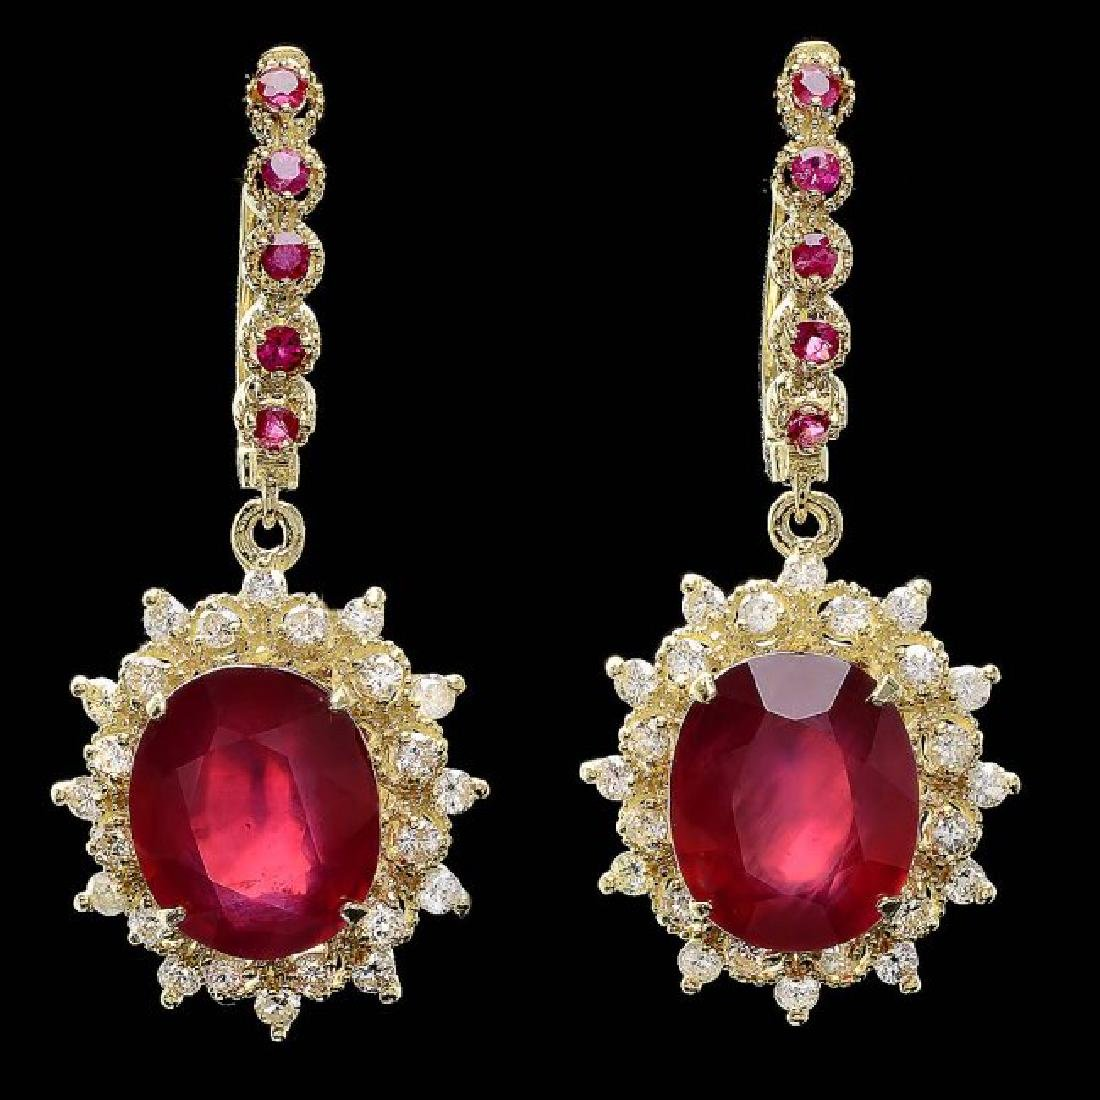 14k Gold 14.4ct Ruby 1.20ct Diamond Earrings